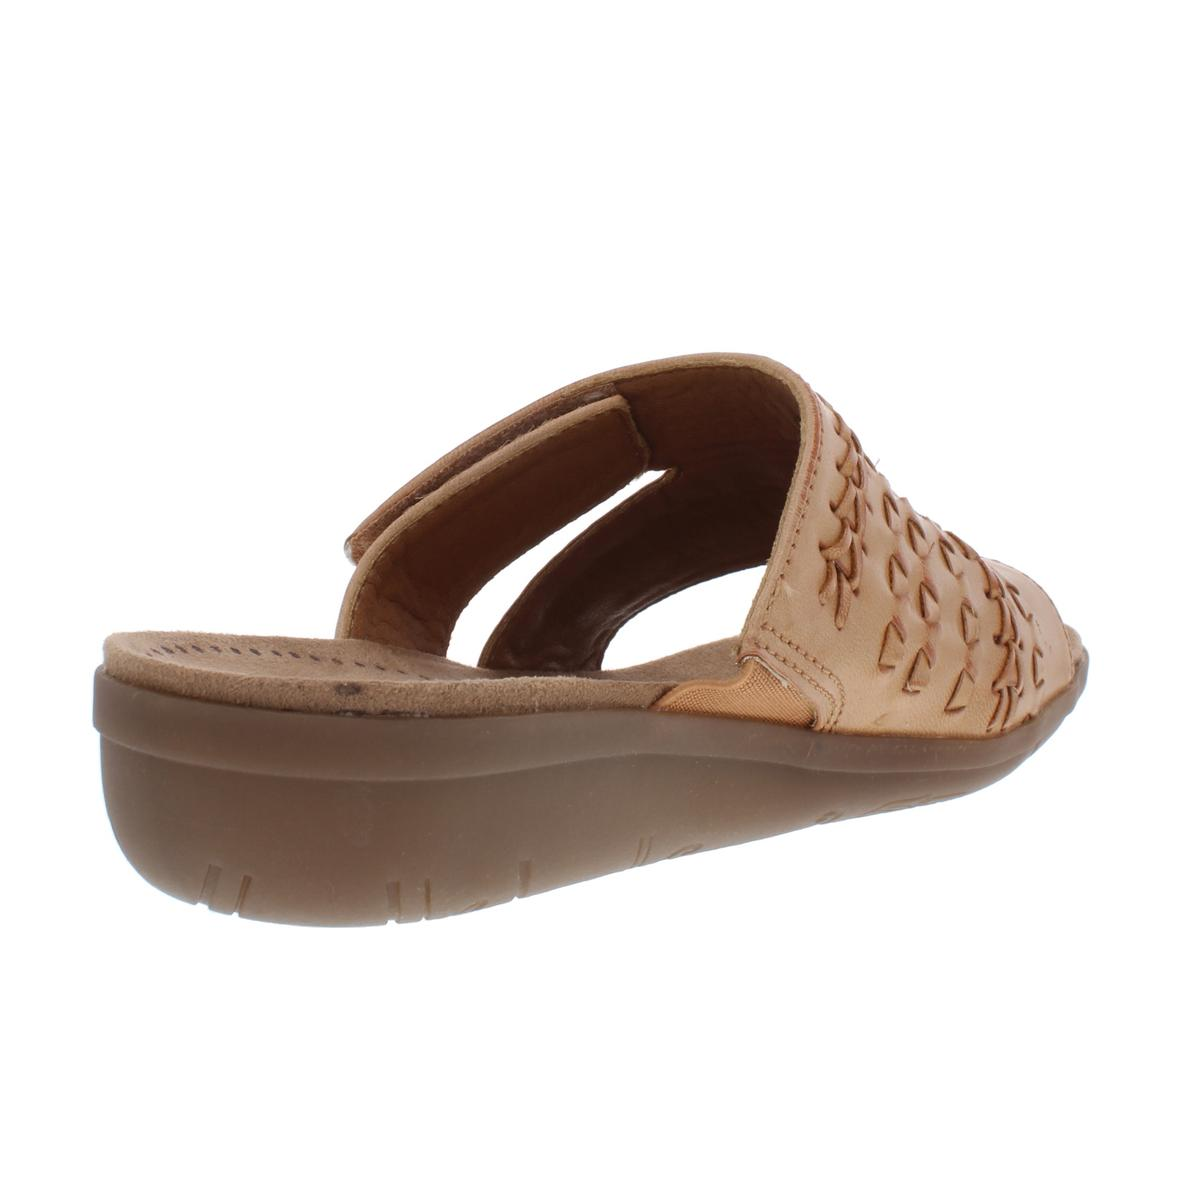 Baretraps-Womens-Jeaney-Faux-Leather-Slip-On-Wedge-Sandals-Shoes-BHFO-7499 thumbnail 4